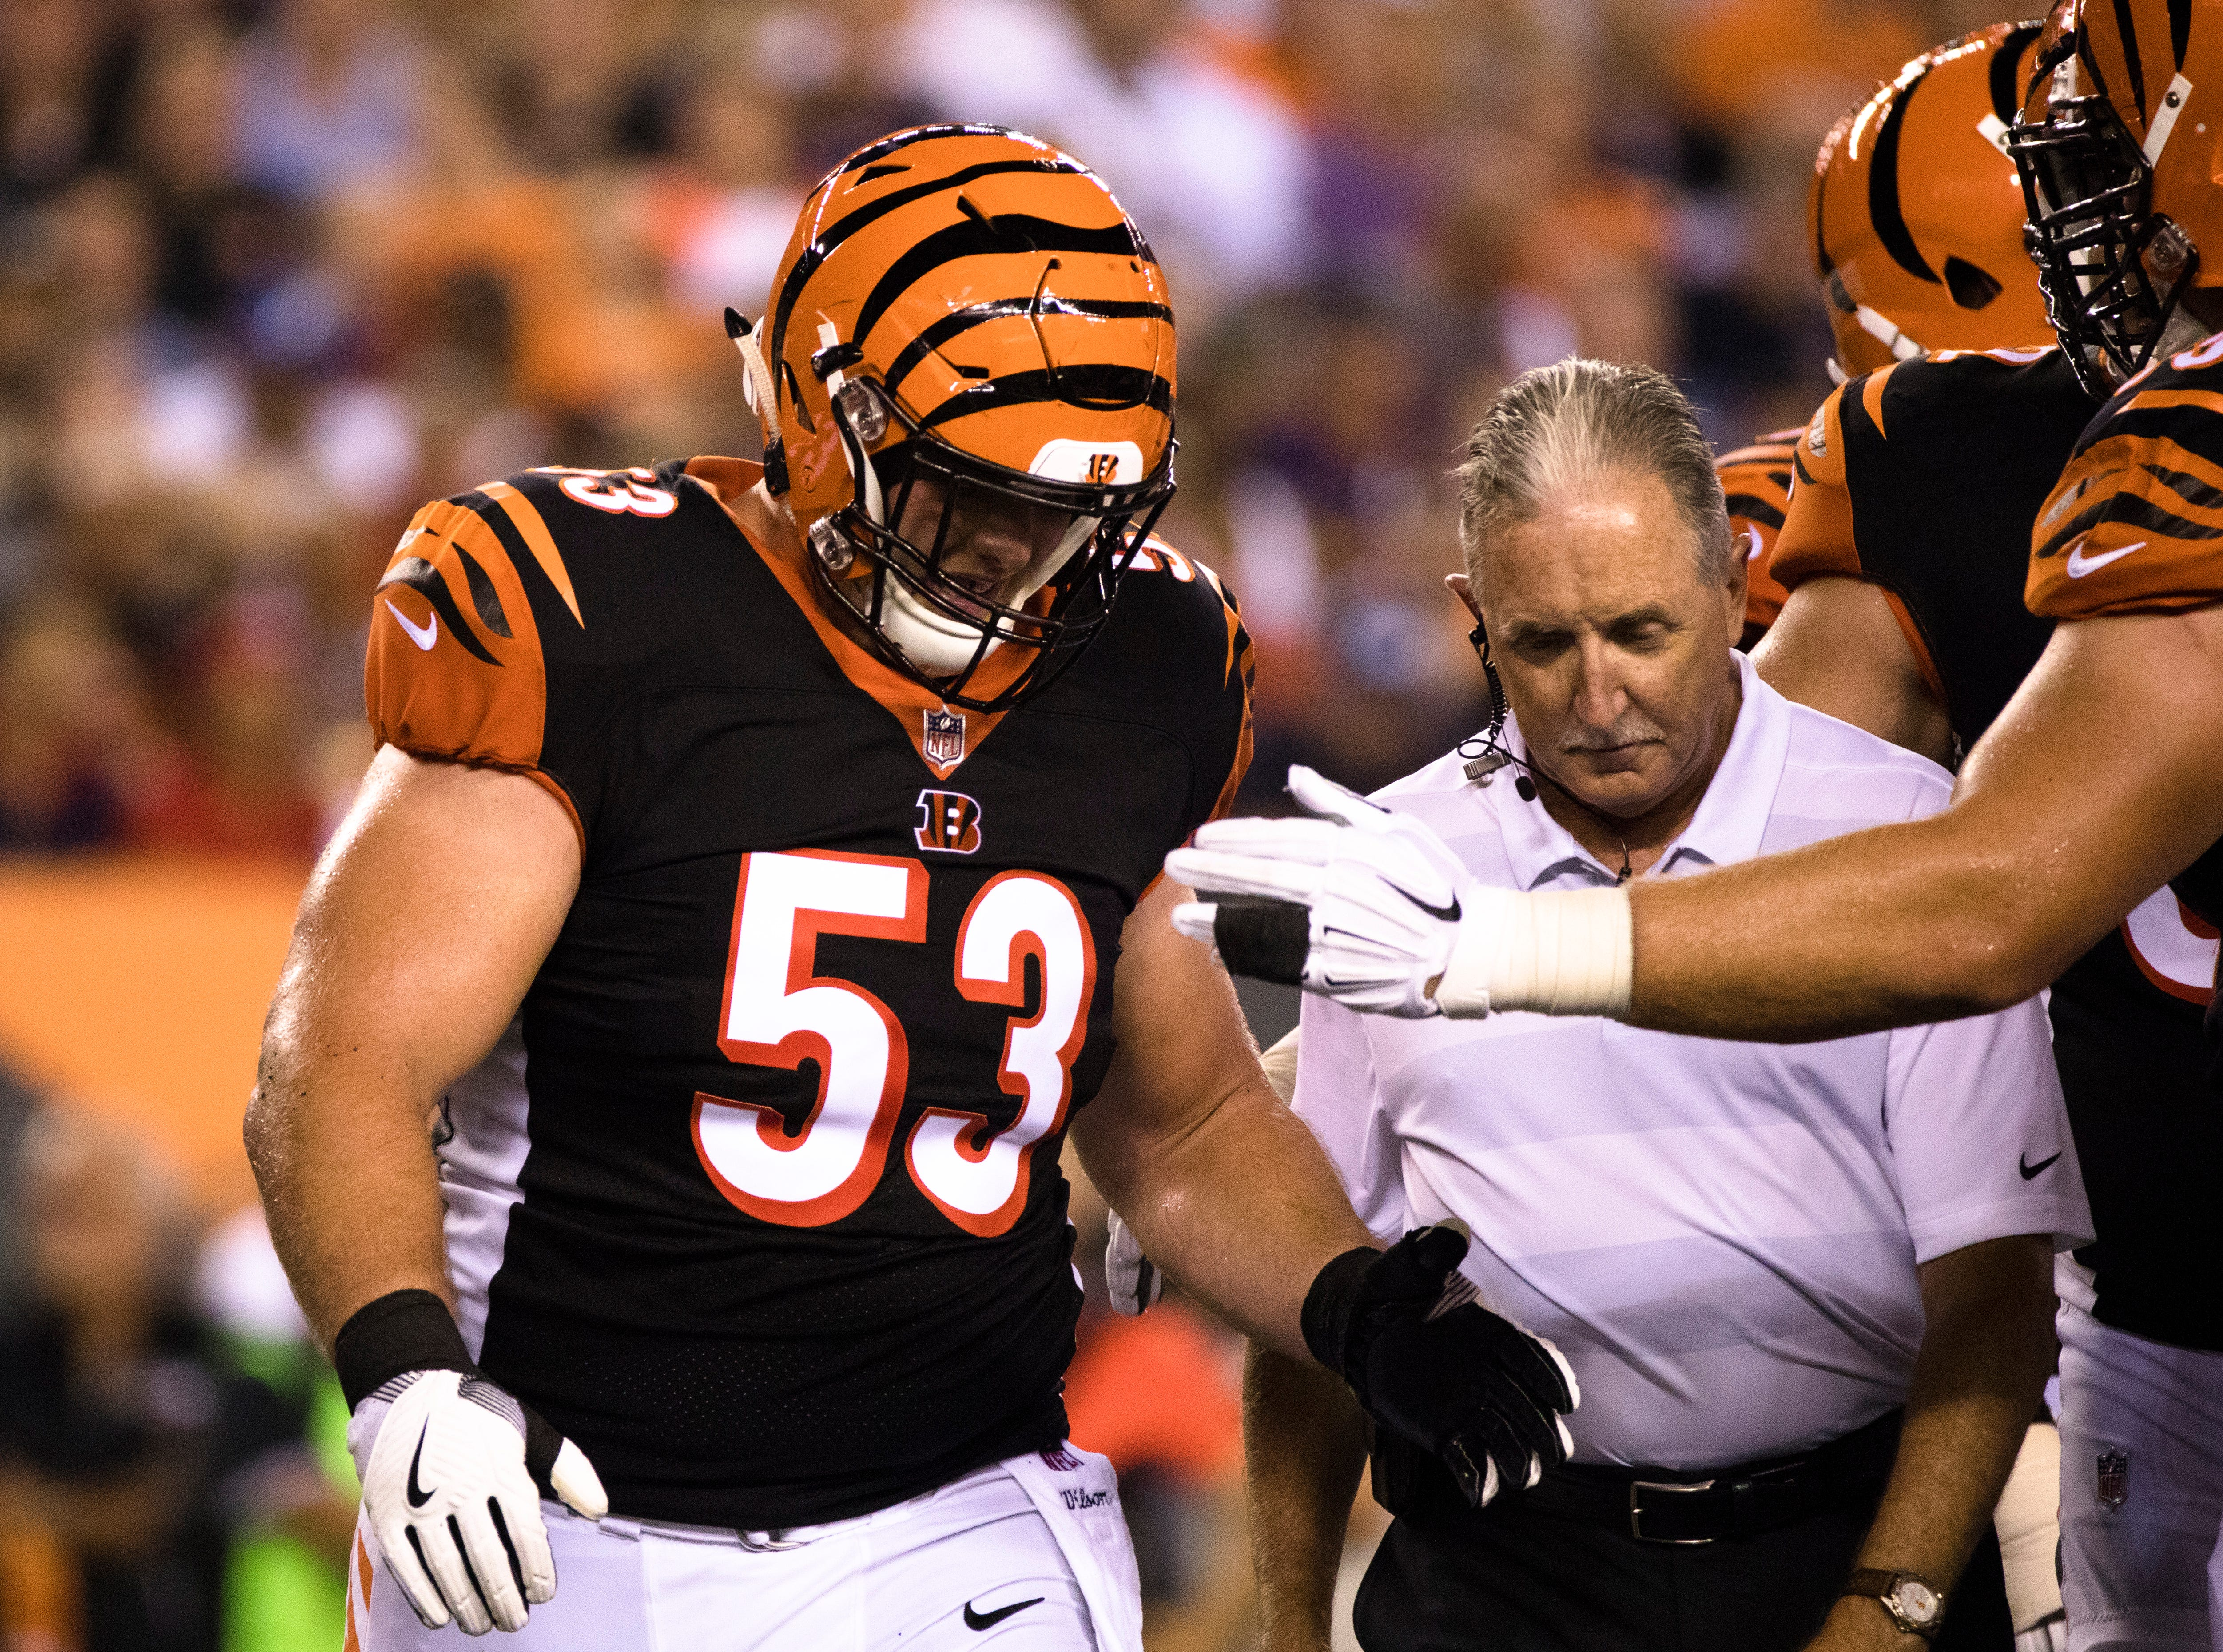 Cincinnati Bengals center Billy Price (53) walks off the field due to an injury during the Week 2 NFL game between the Cincinnati Bengals and the Baltimore Ravens, Thursday, Sept. 13, 2018, at Paul Brown Stadium in Cincinnati.